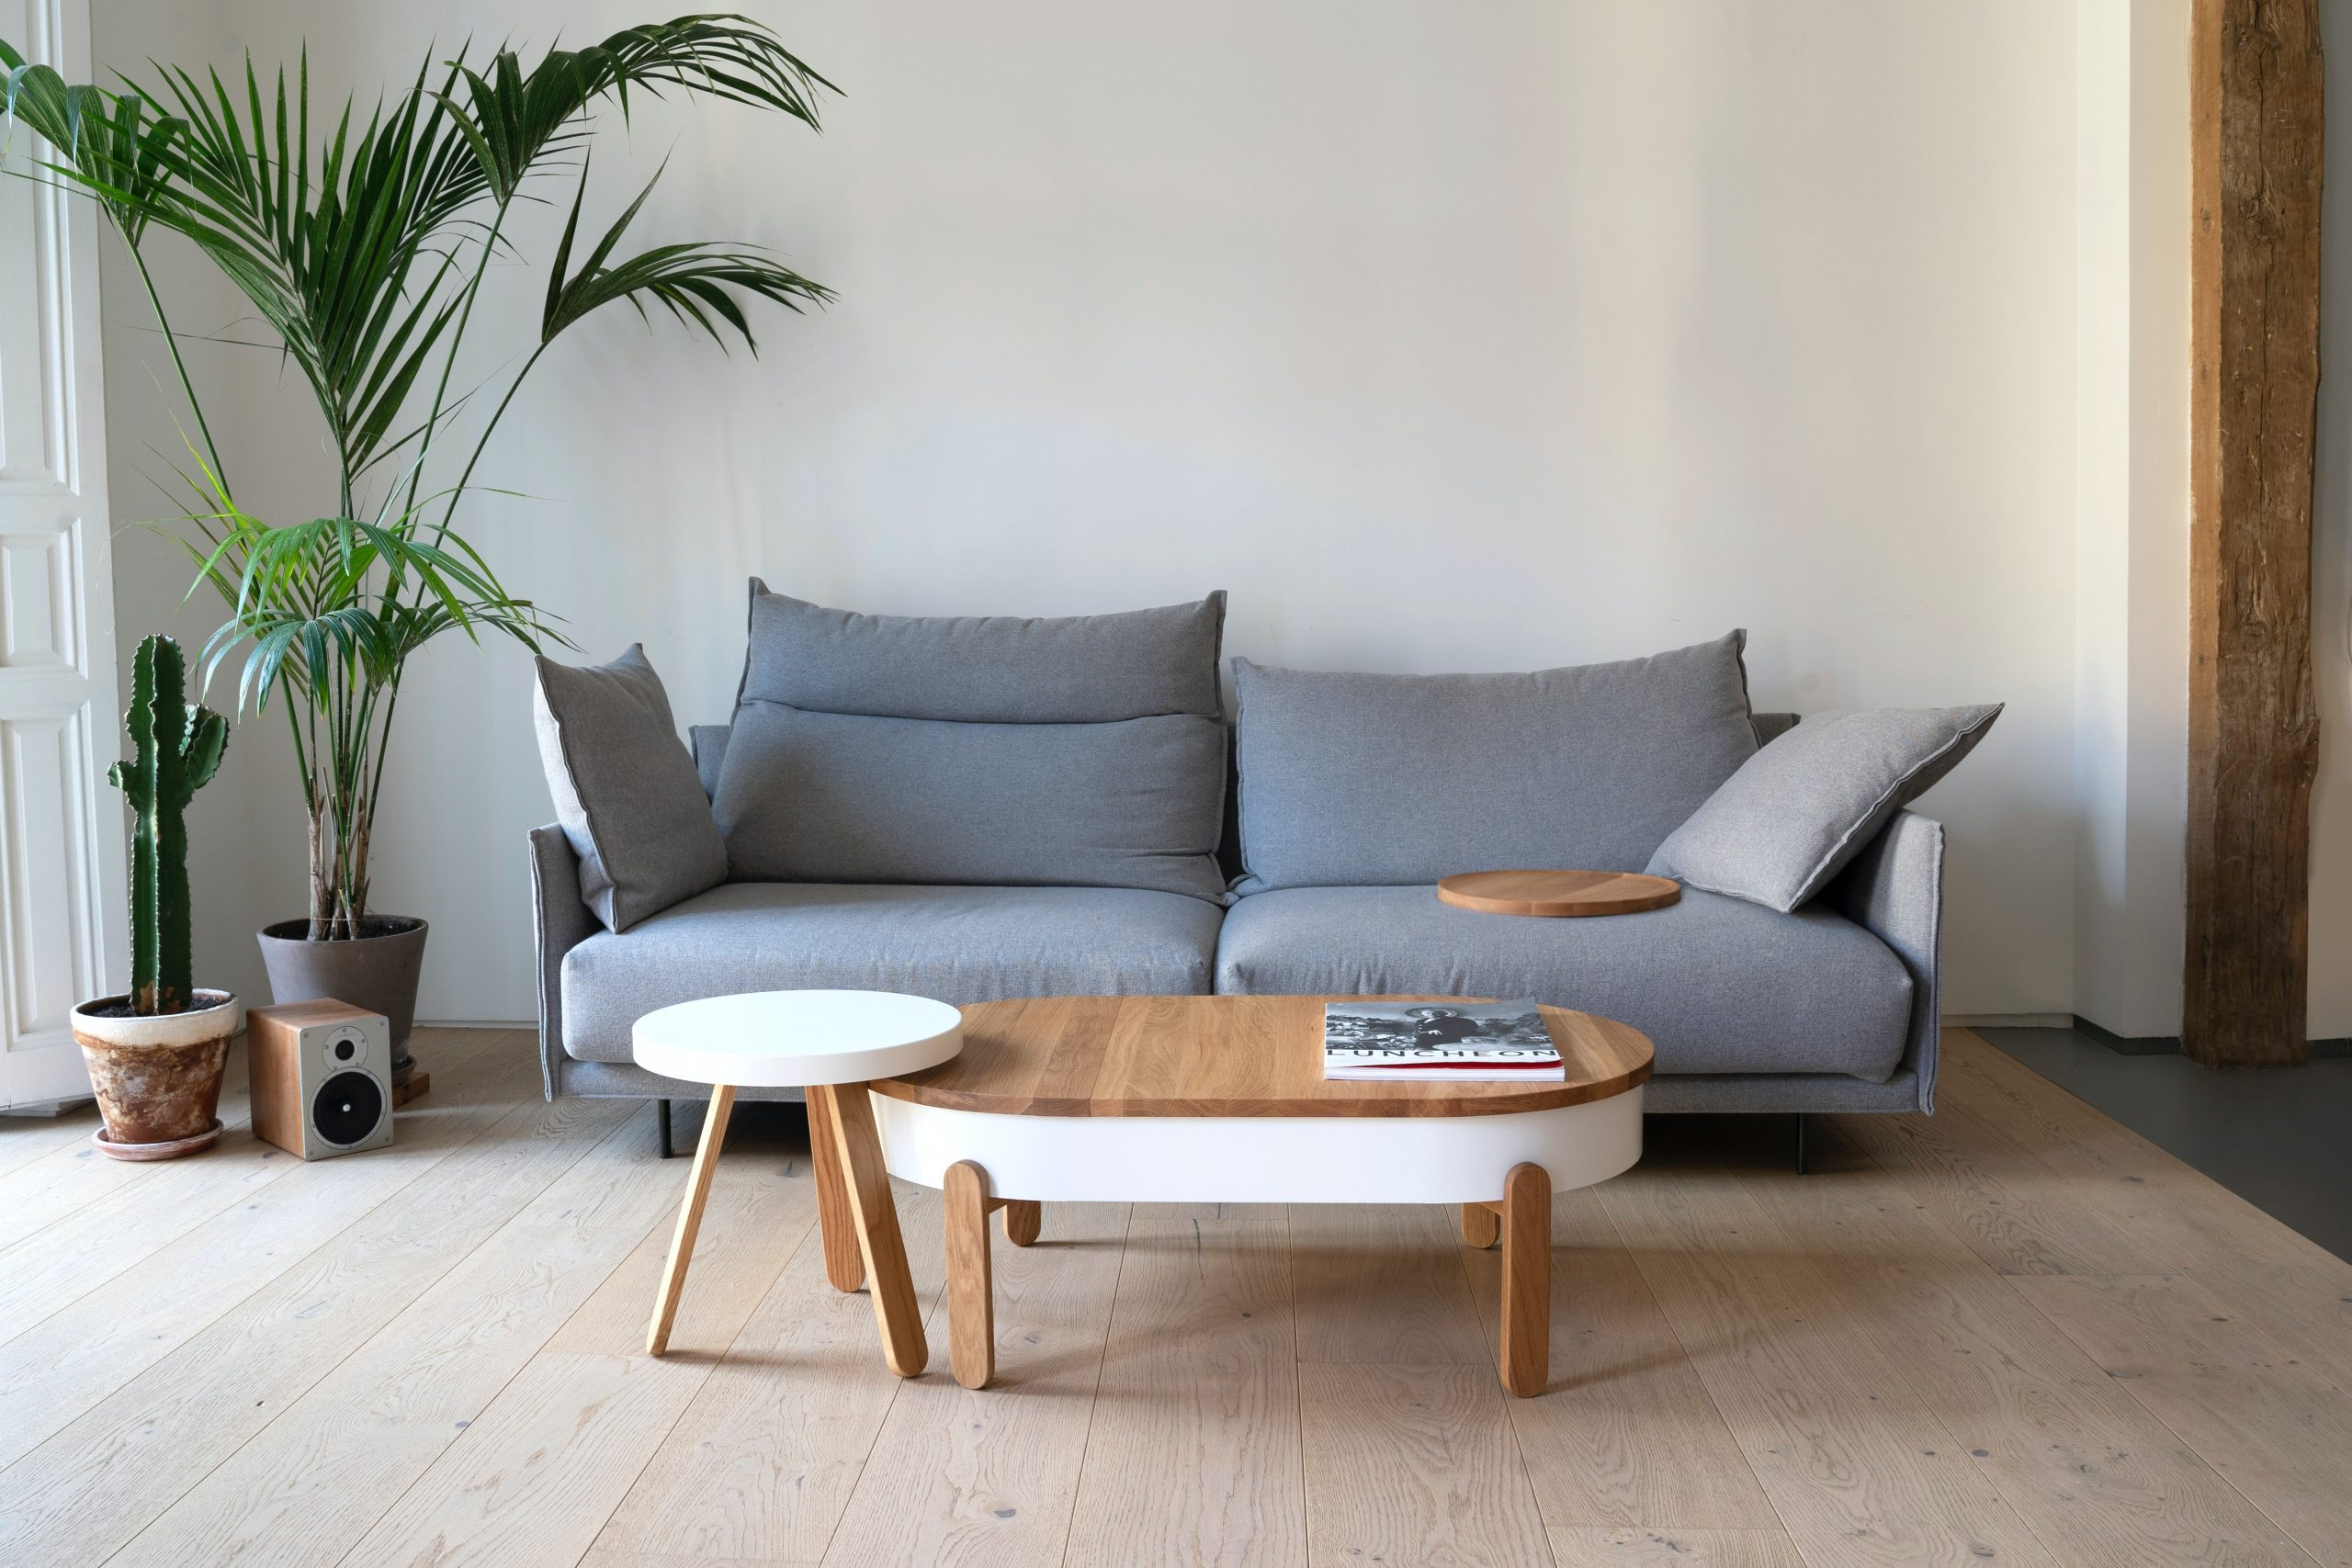 wooden coffee table in front of a grey sofa, Small Budget Redecoration Ideas That Look Amazing